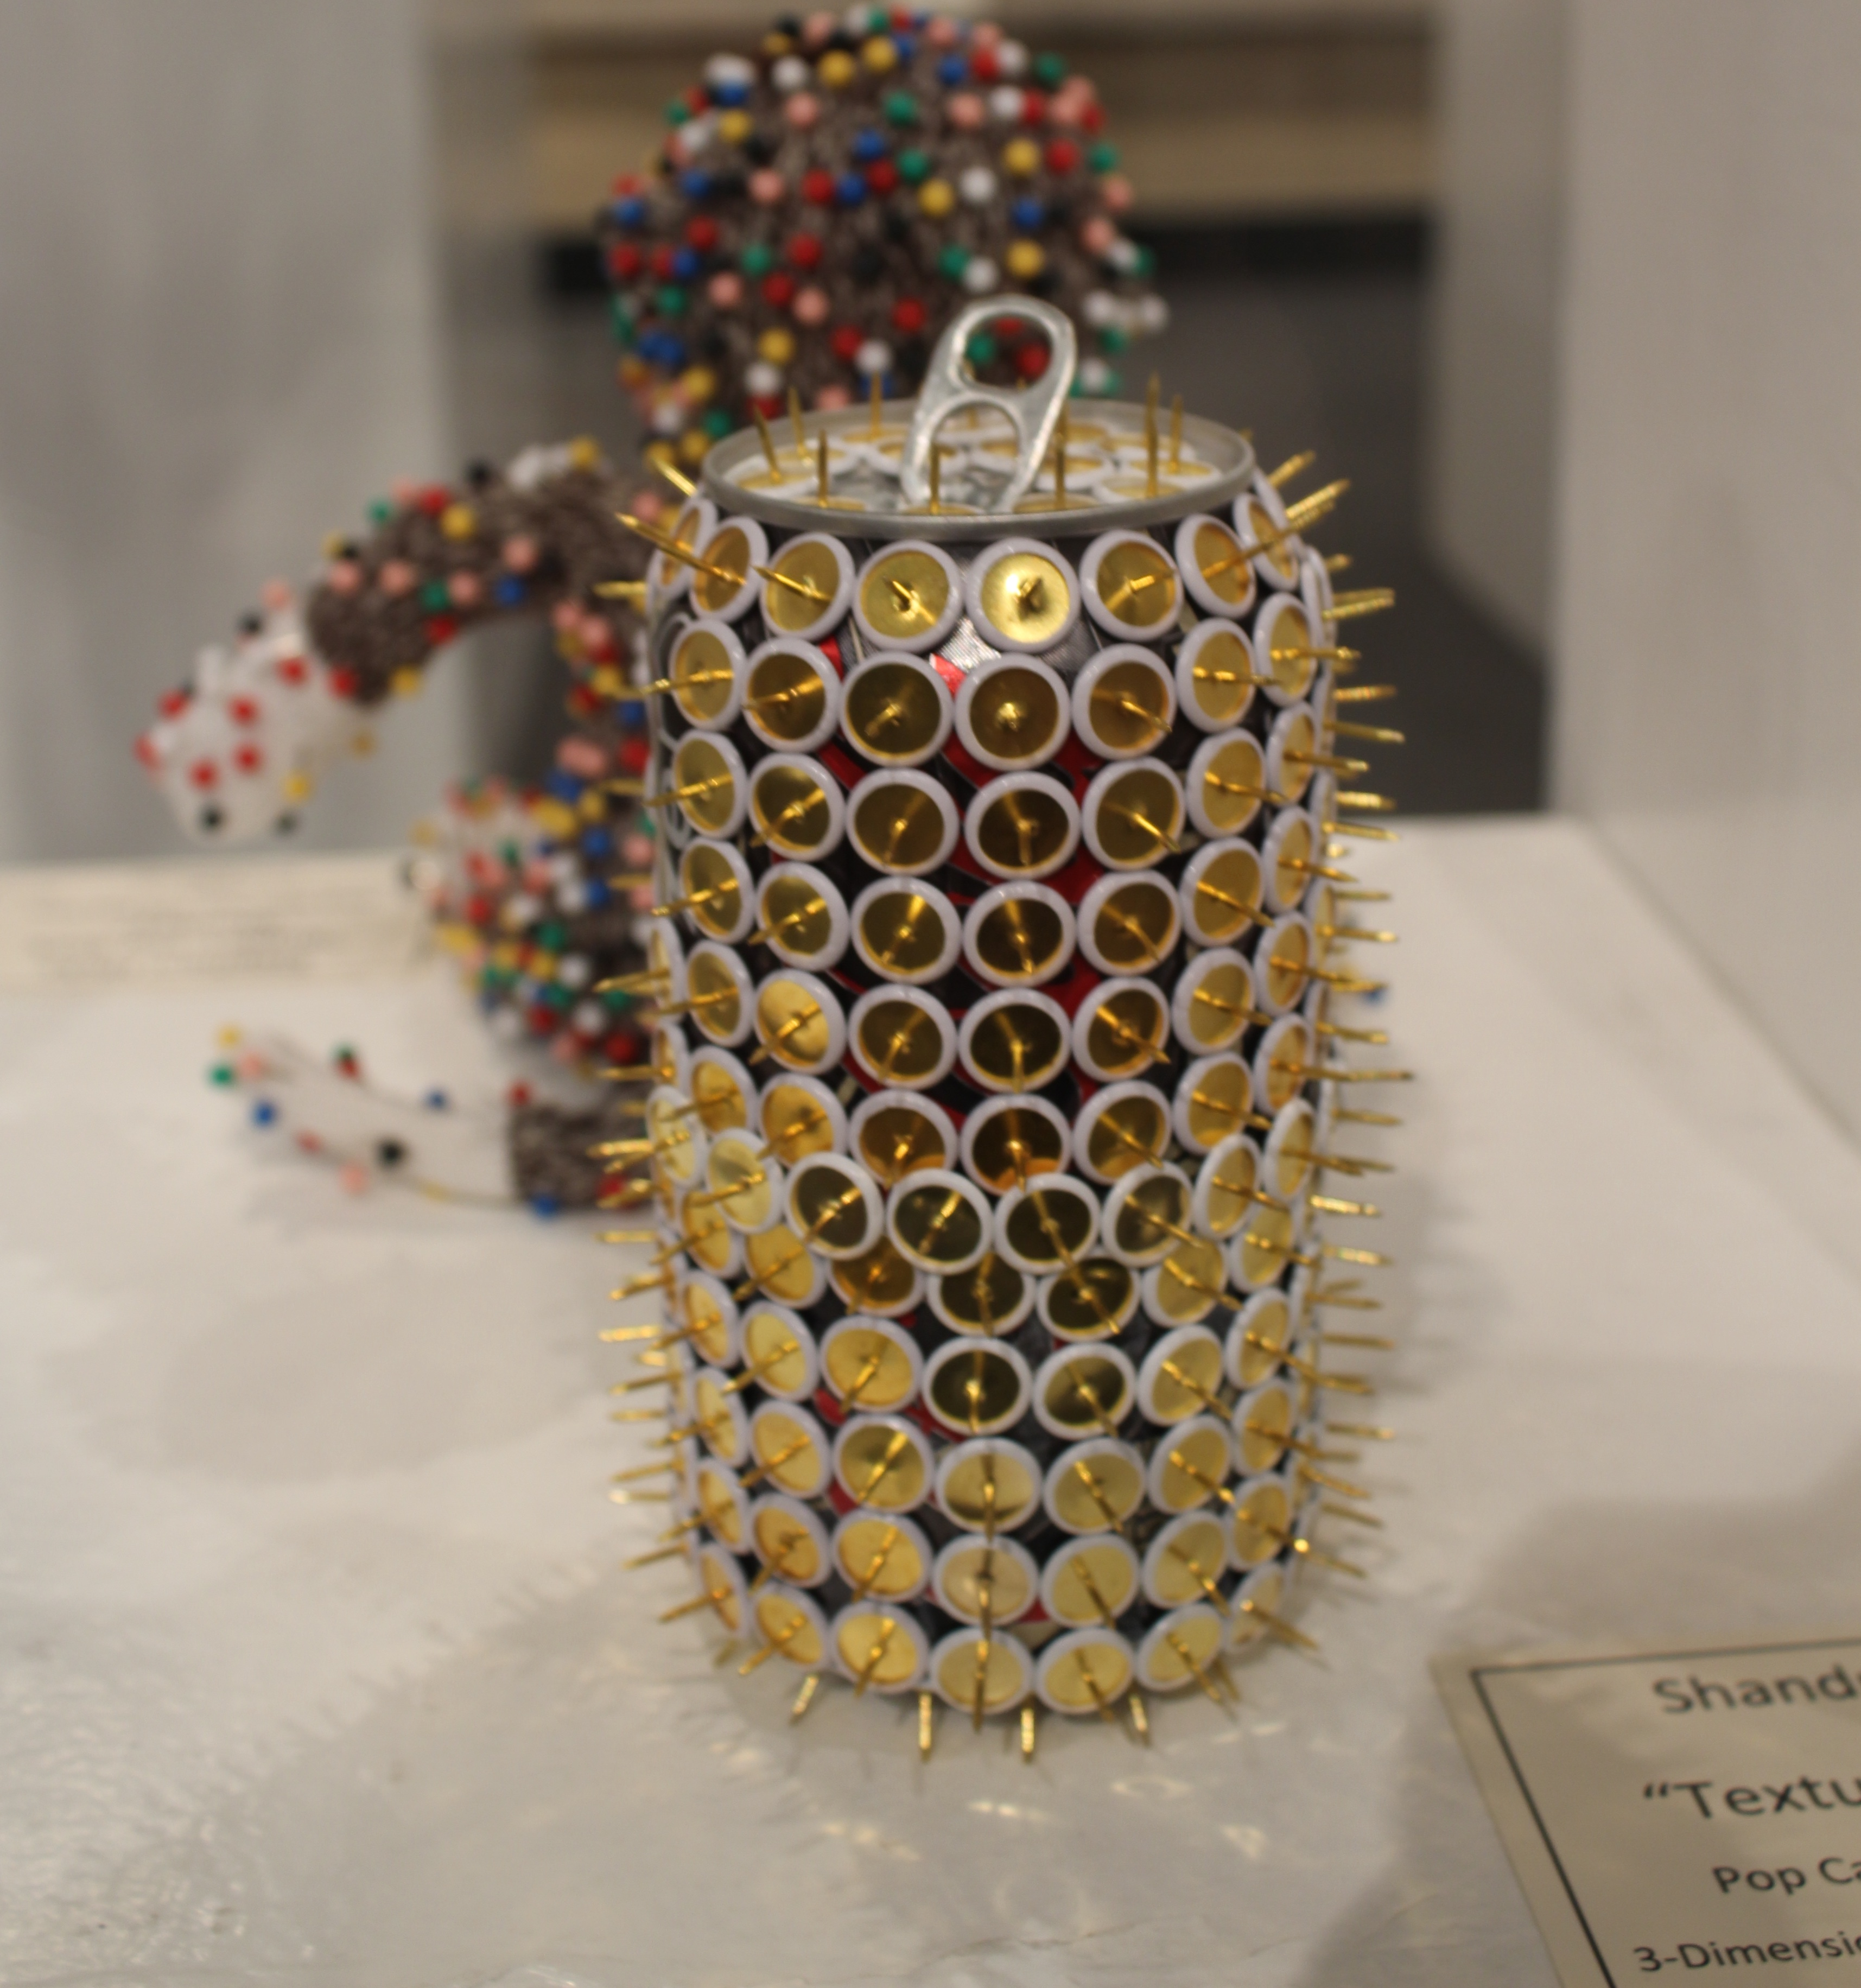 """Texture"" by Shandra Dicks - pop can covered with golden thumb tacks sharp end pointed outward."